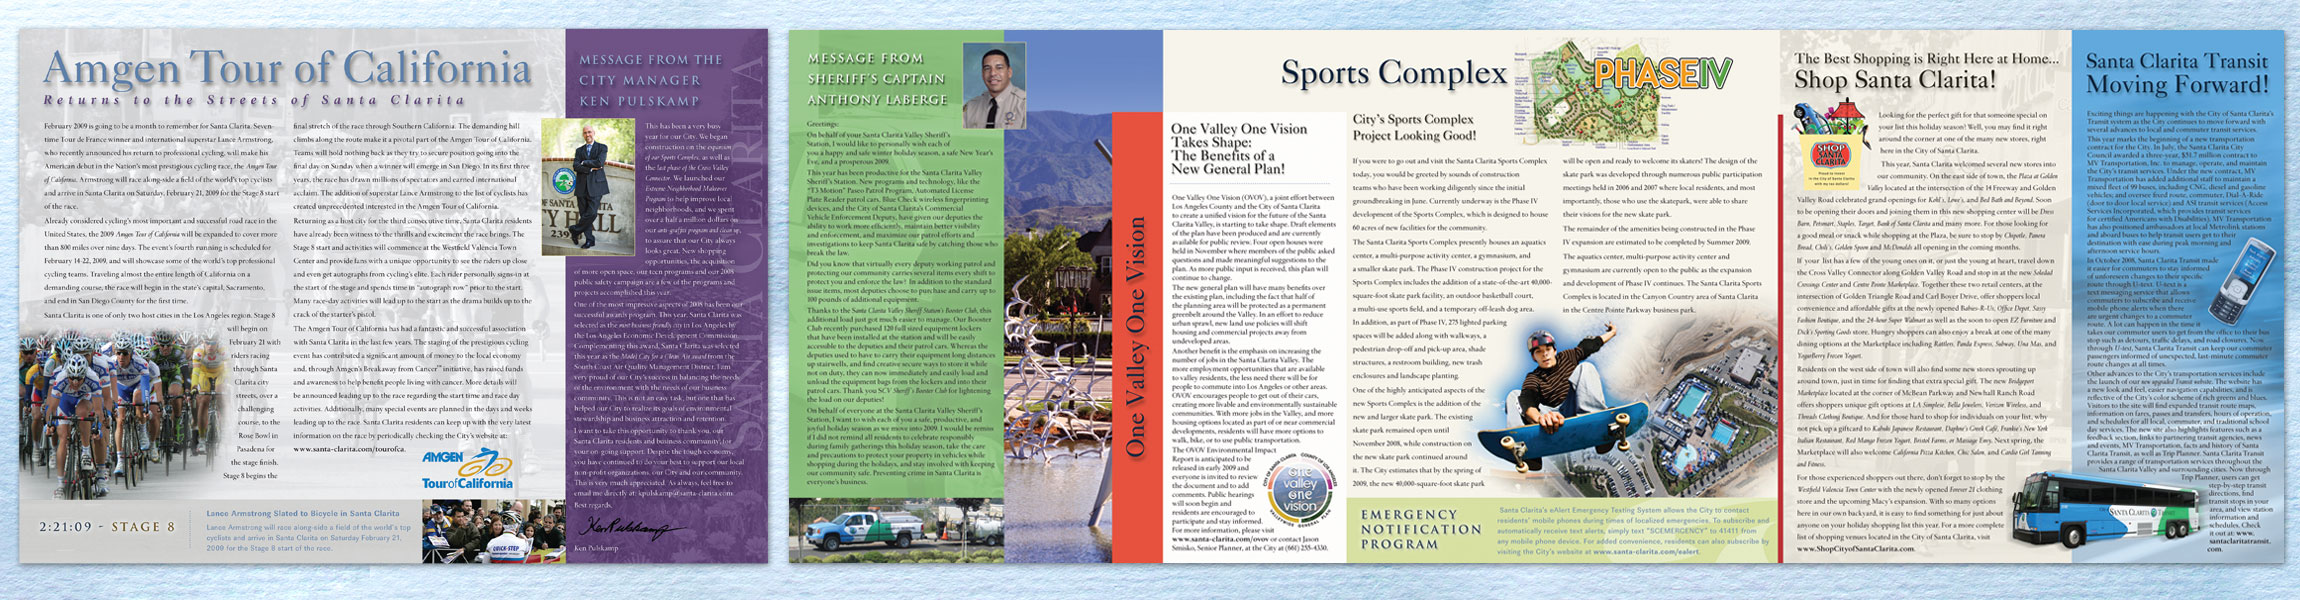 Semi-Annual Newsletter to 200,000 Residents